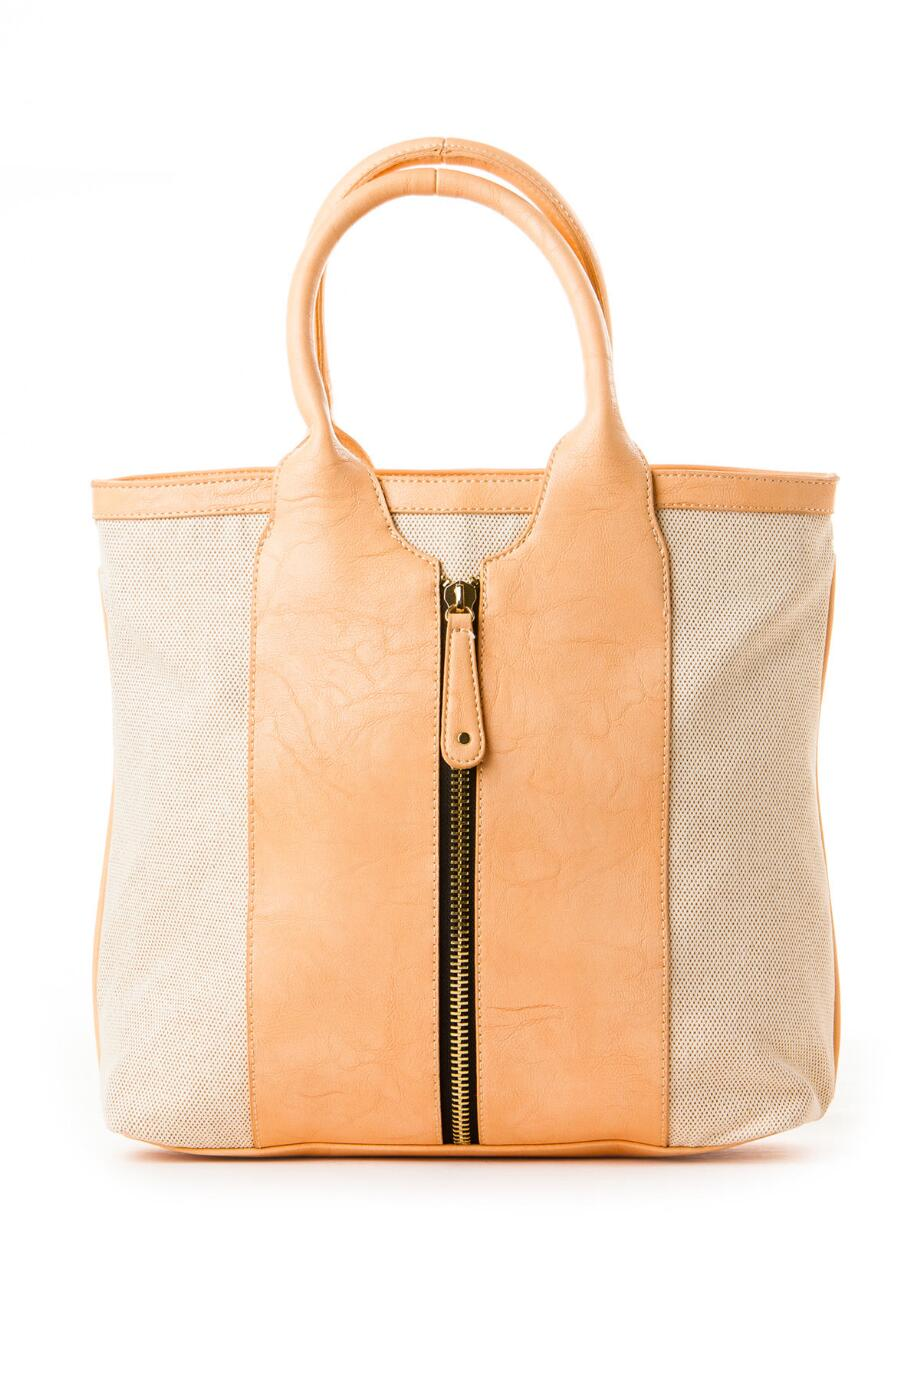 Nantucket Canvas Medium Striped Tote in Nude